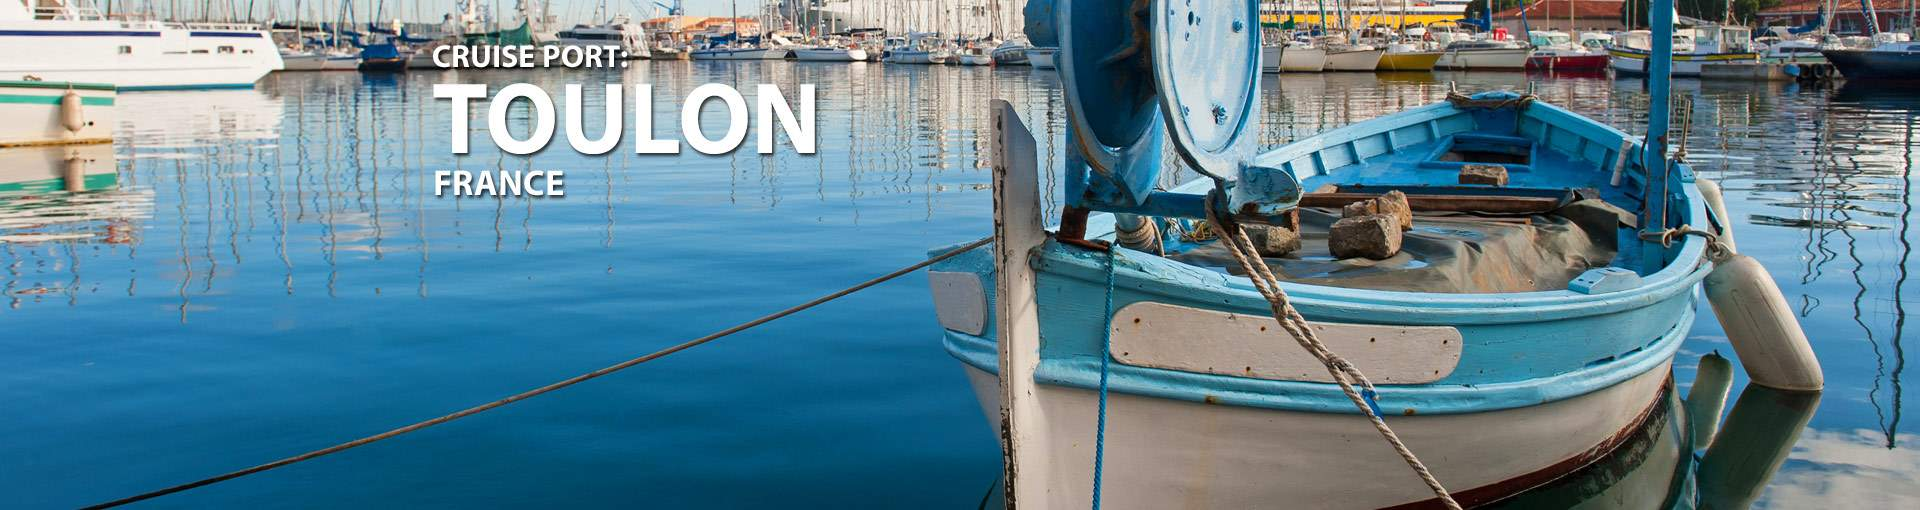 Cruises from Toulon, France